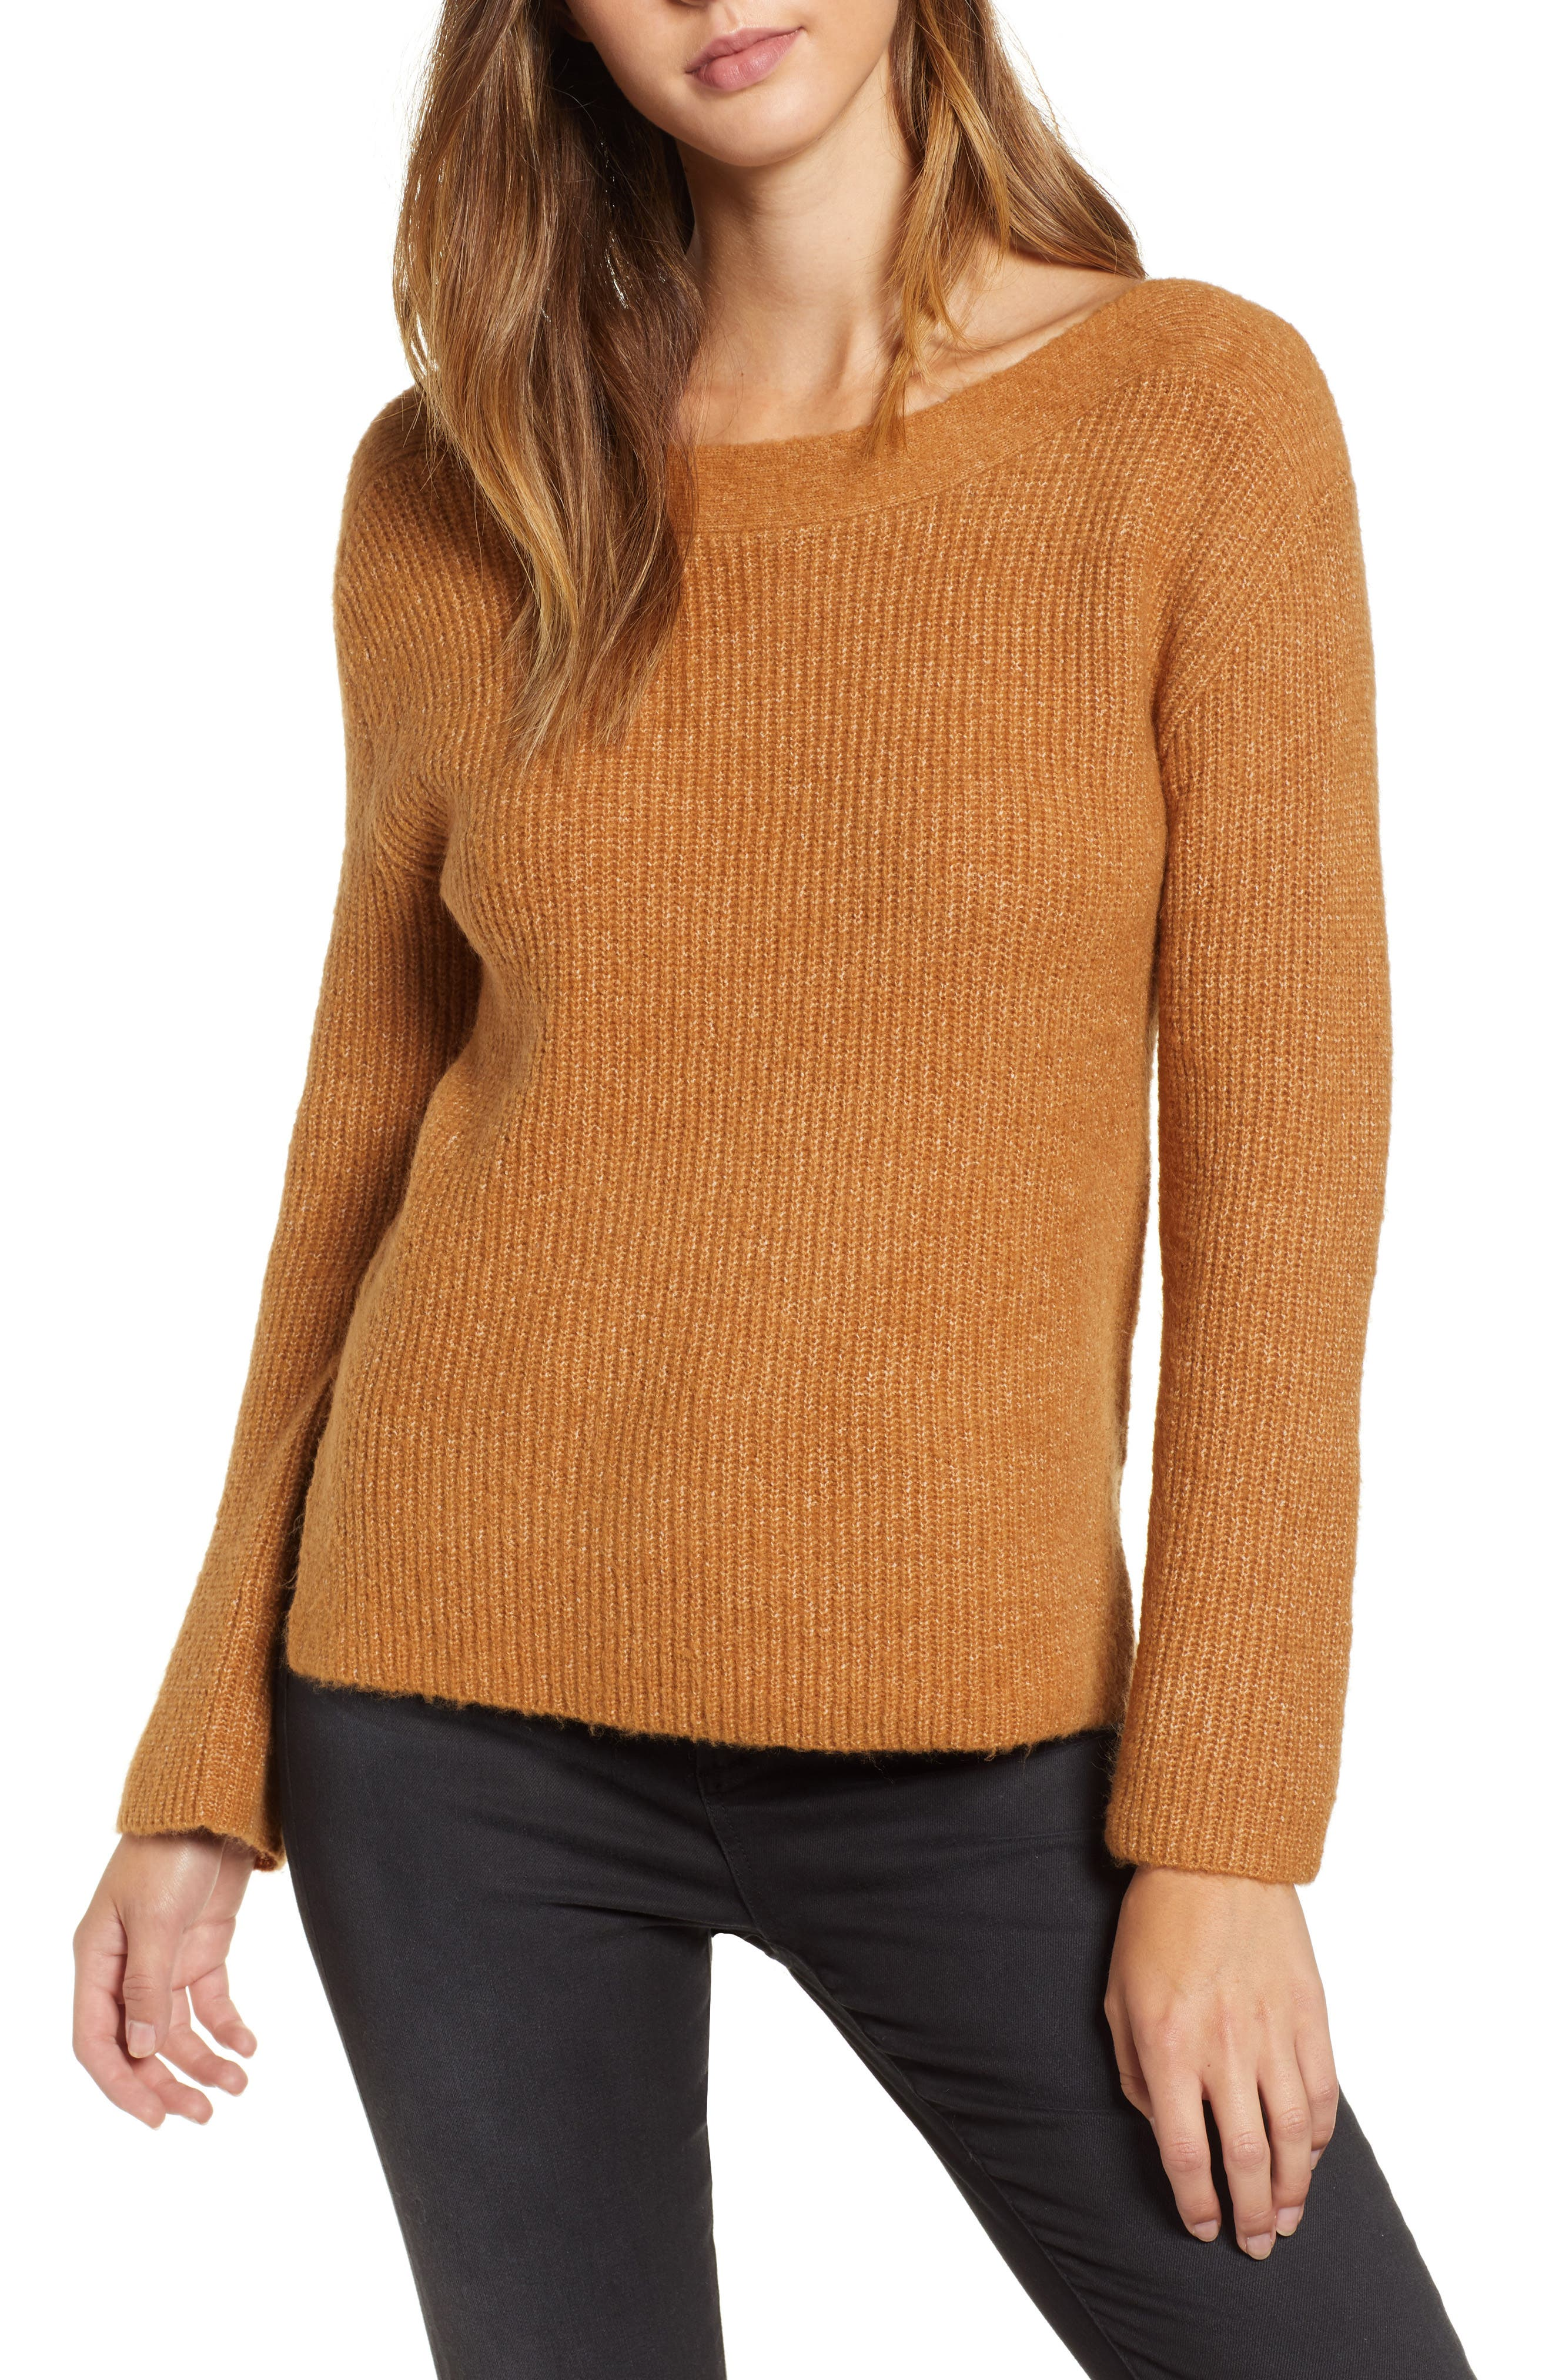 Cozy Femme Pullover Sweater,                             Main thumbnail 1, color,                             TAN DALE